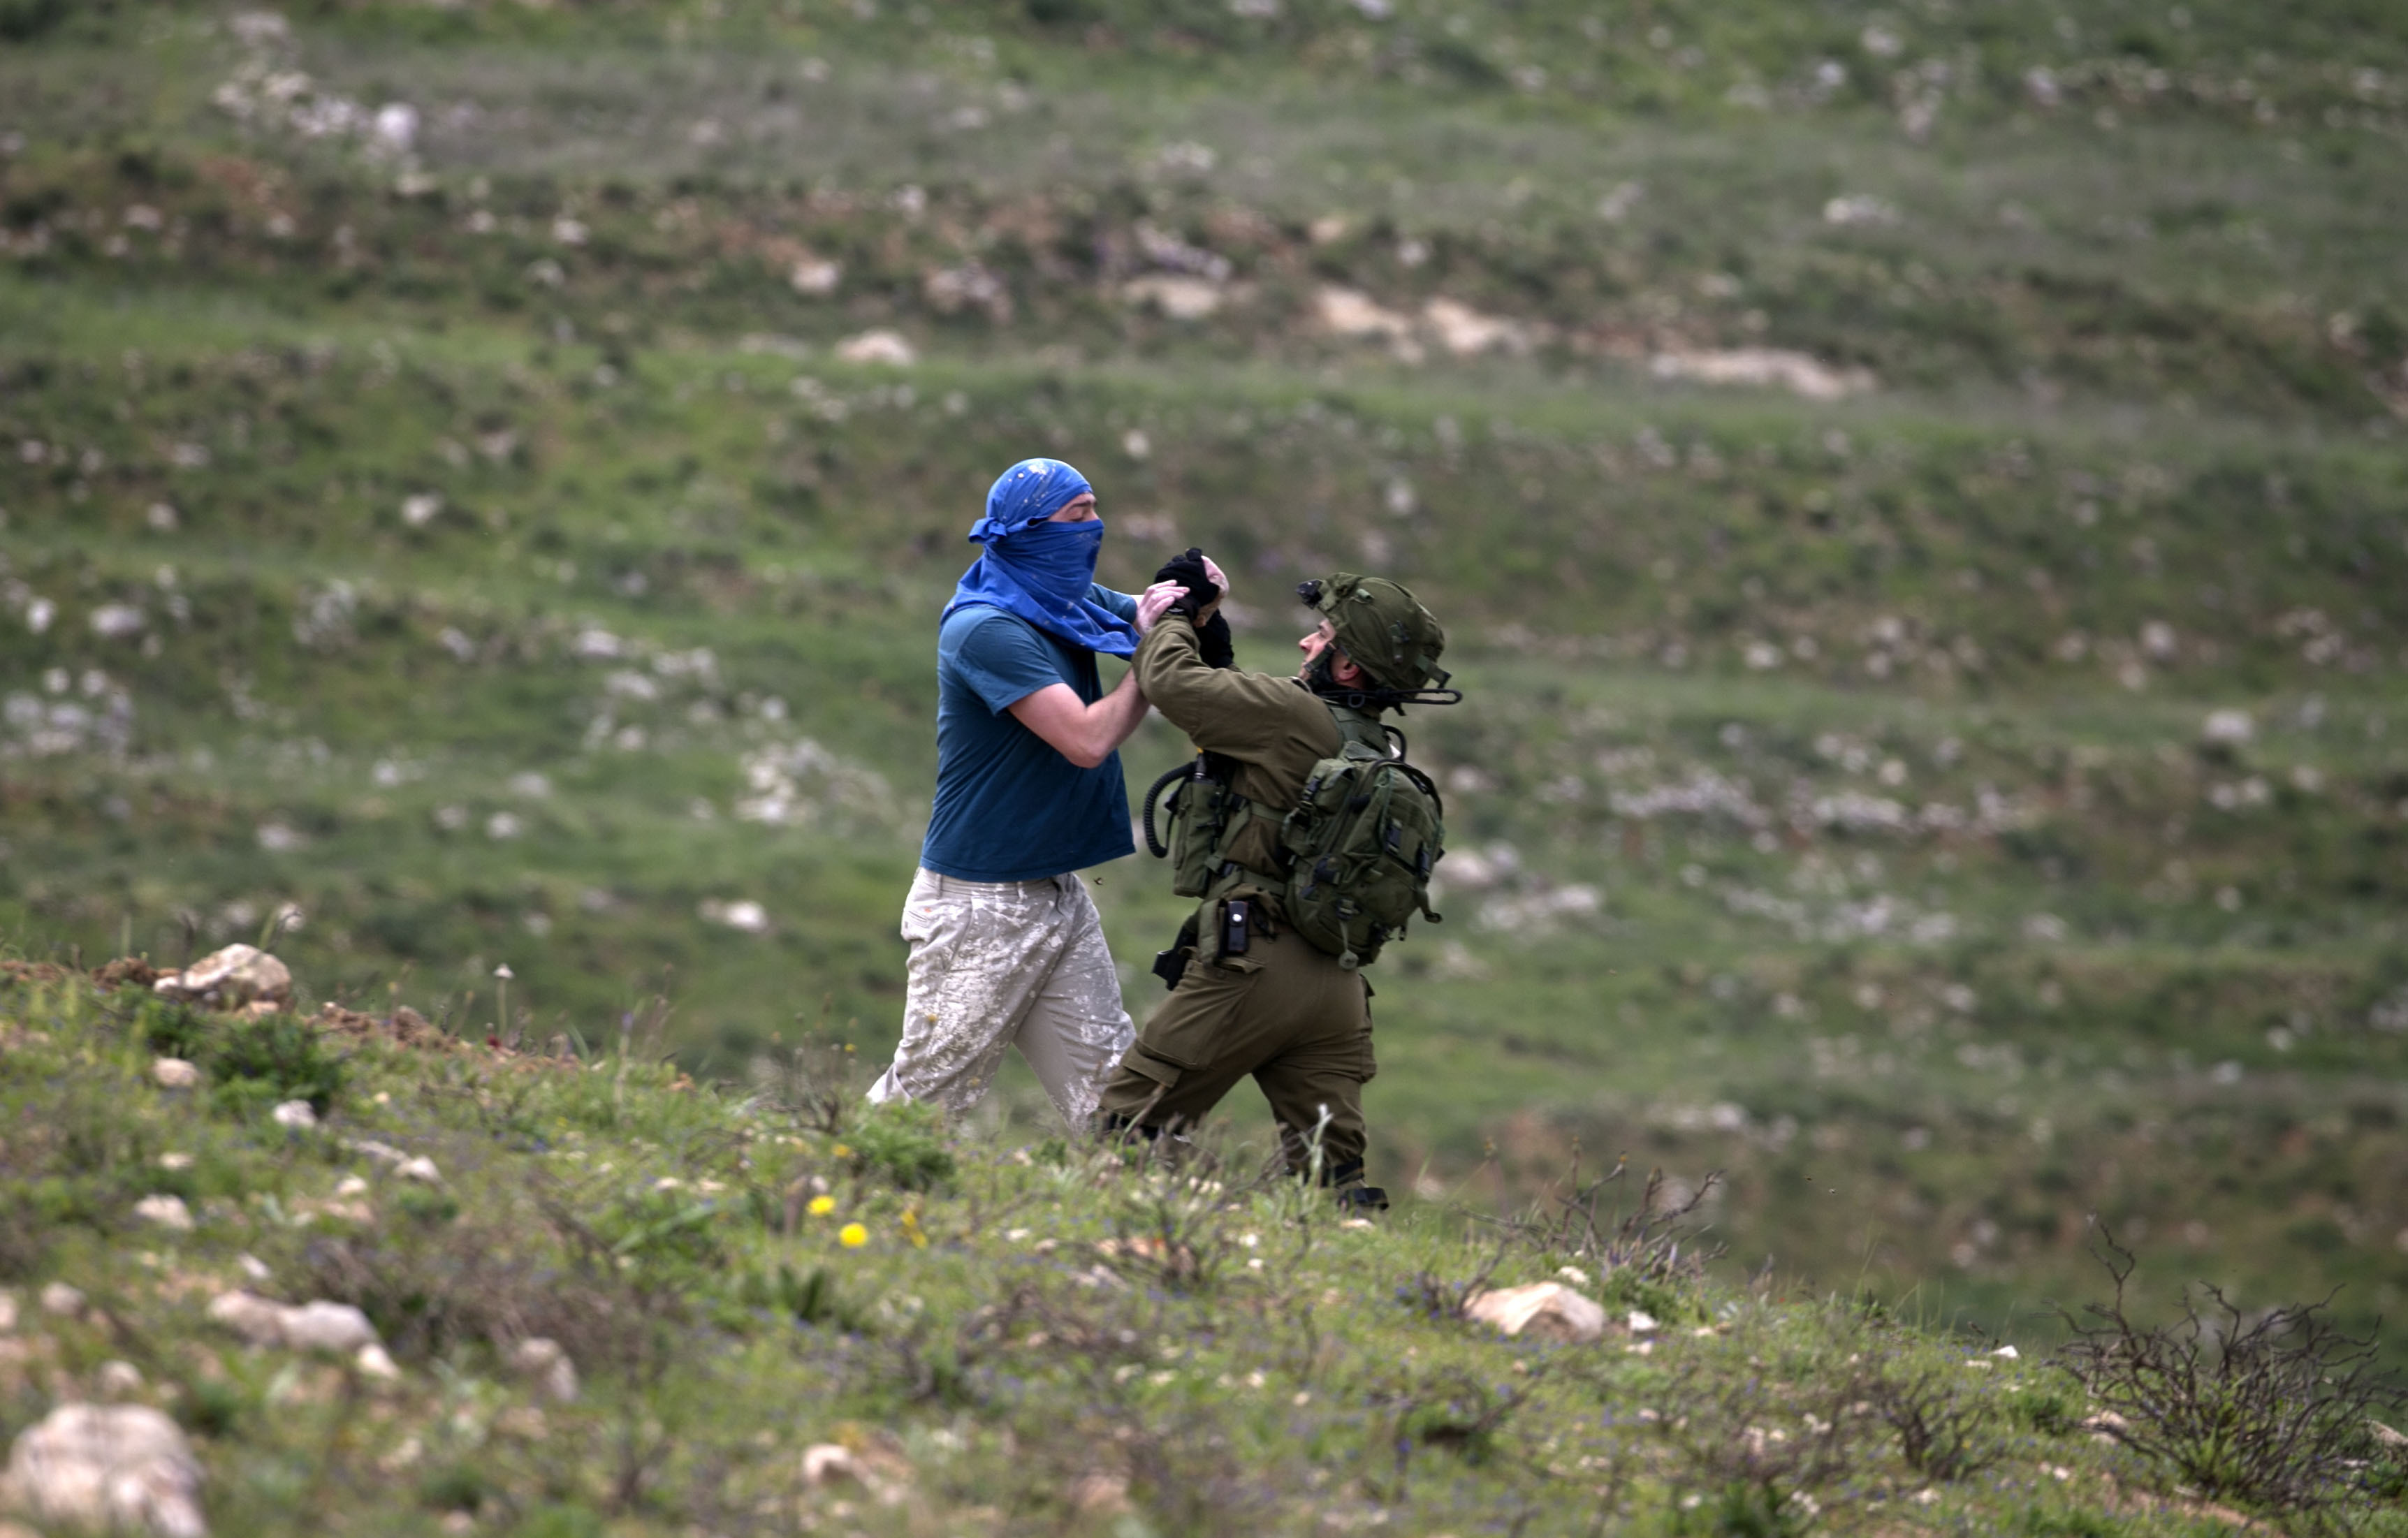 TOPSHOT - An Israeli soldier scuffles with a masked Israeli settler while trying to remove him from the area of a protest by Palestinians on March 30, 2017, to mark land day, in village of Madama south of Nablus in the Israeli occupied West Bank. Land Day marks the killing of six Arab Israelis during 1976 demonstrations against Israeli confiscations of Arab land. / AFP PHOTO / JAAFAR ASHTIYEH / TT / kod 444